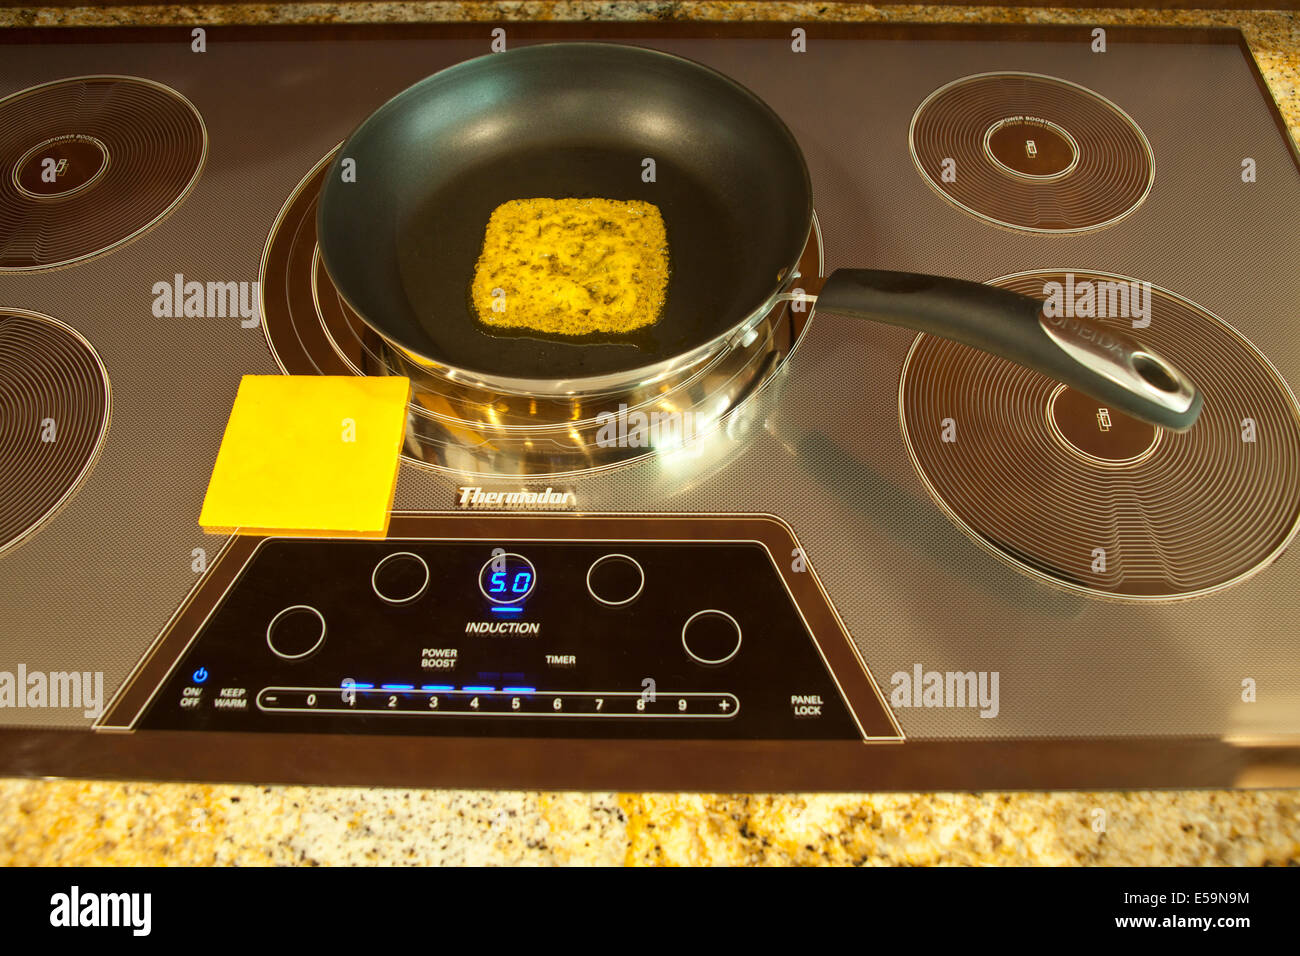 Magnetic energy of Thermador Induction cooktop with melting cheeseMR  Series of 4 images. © Myrleen Pearson - Stock Image